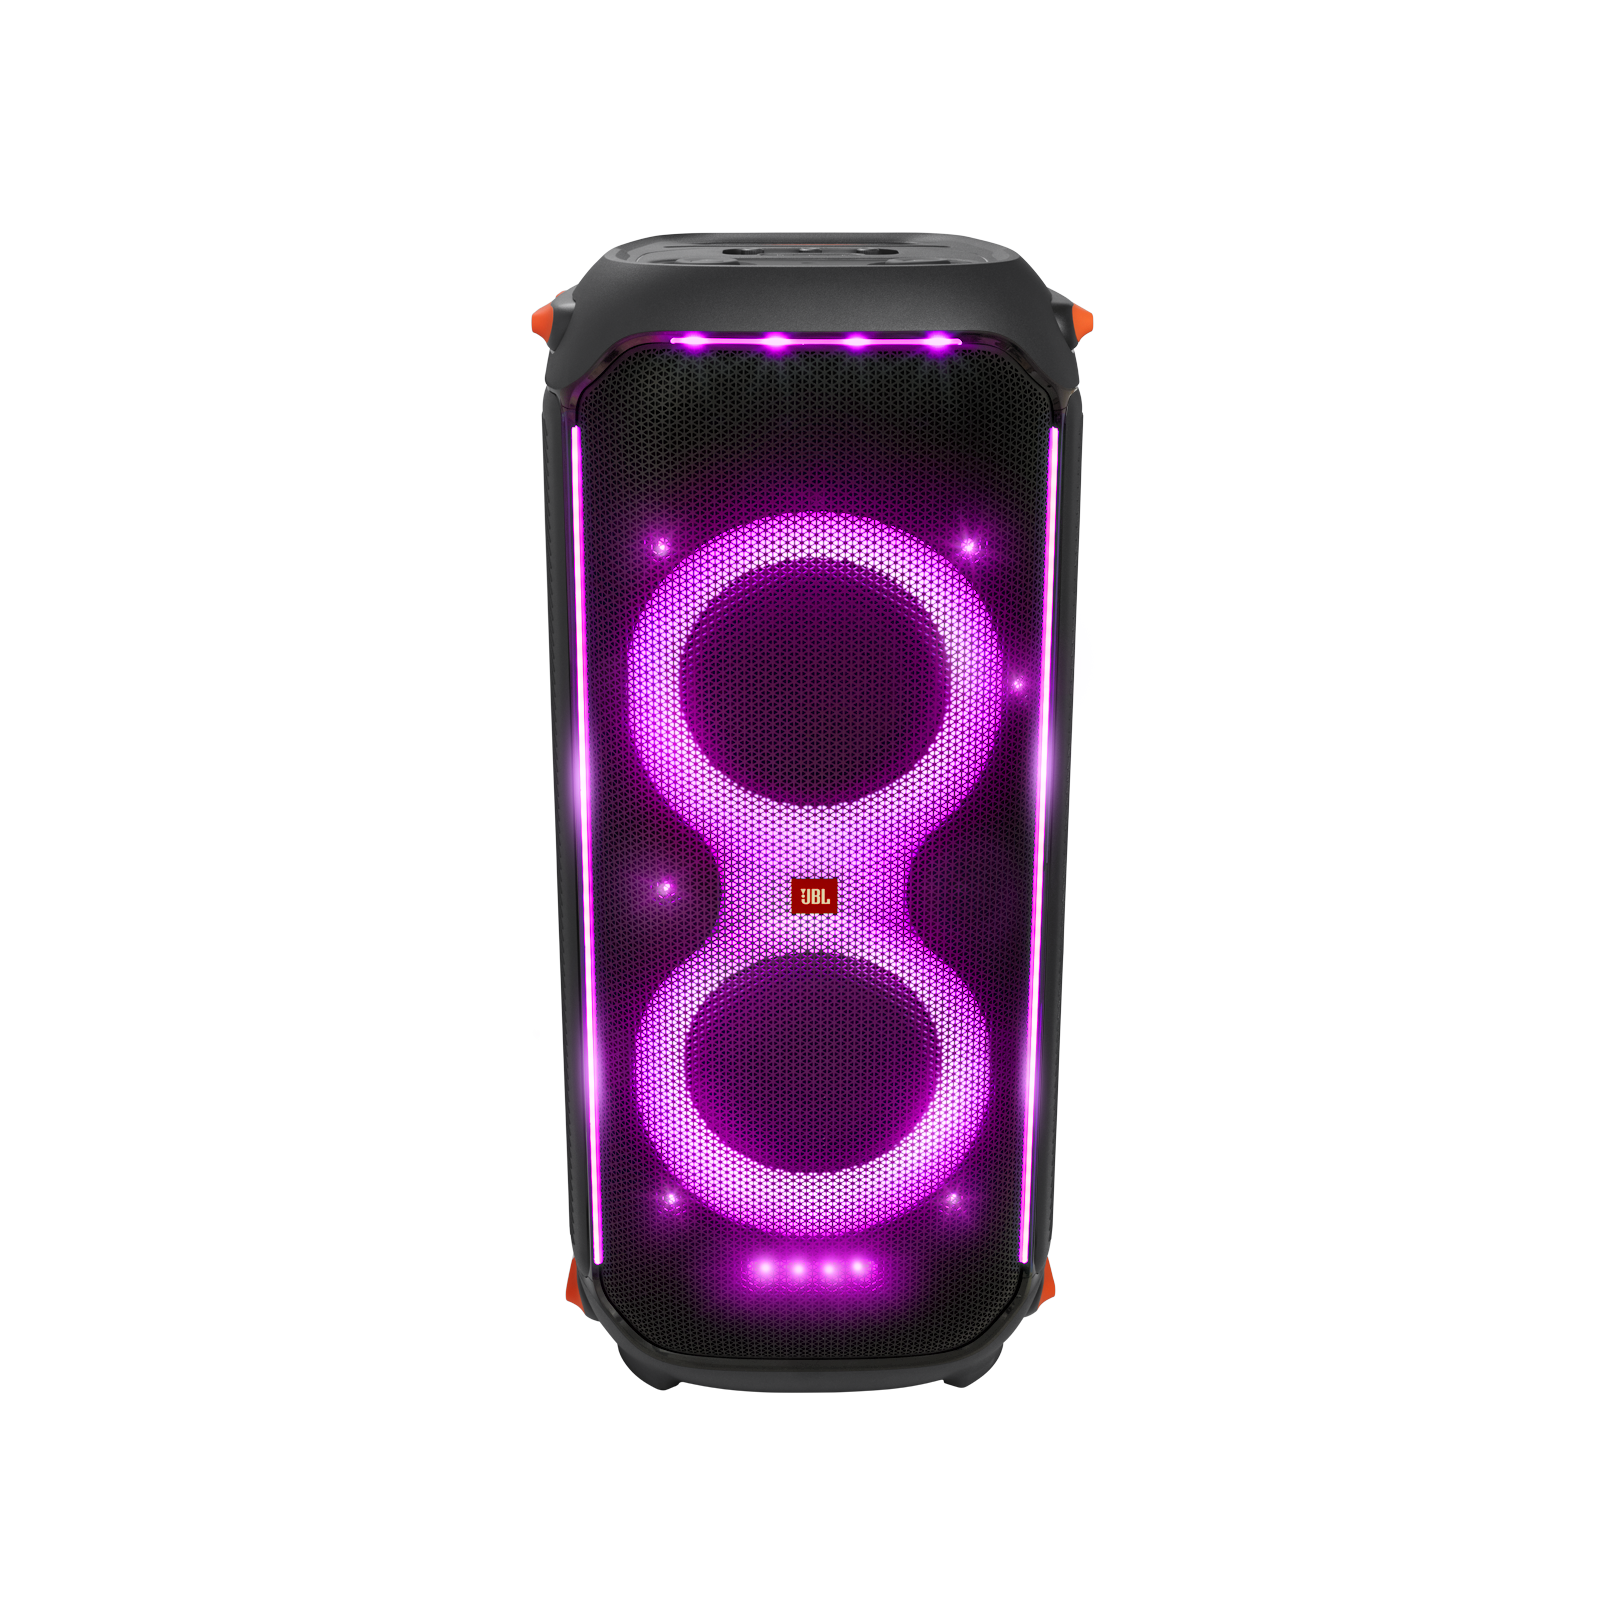 JBL Partybox 710 - Black - Party speaker with 800W RMS powerful sound, built-in lights and splashproof design. - Front